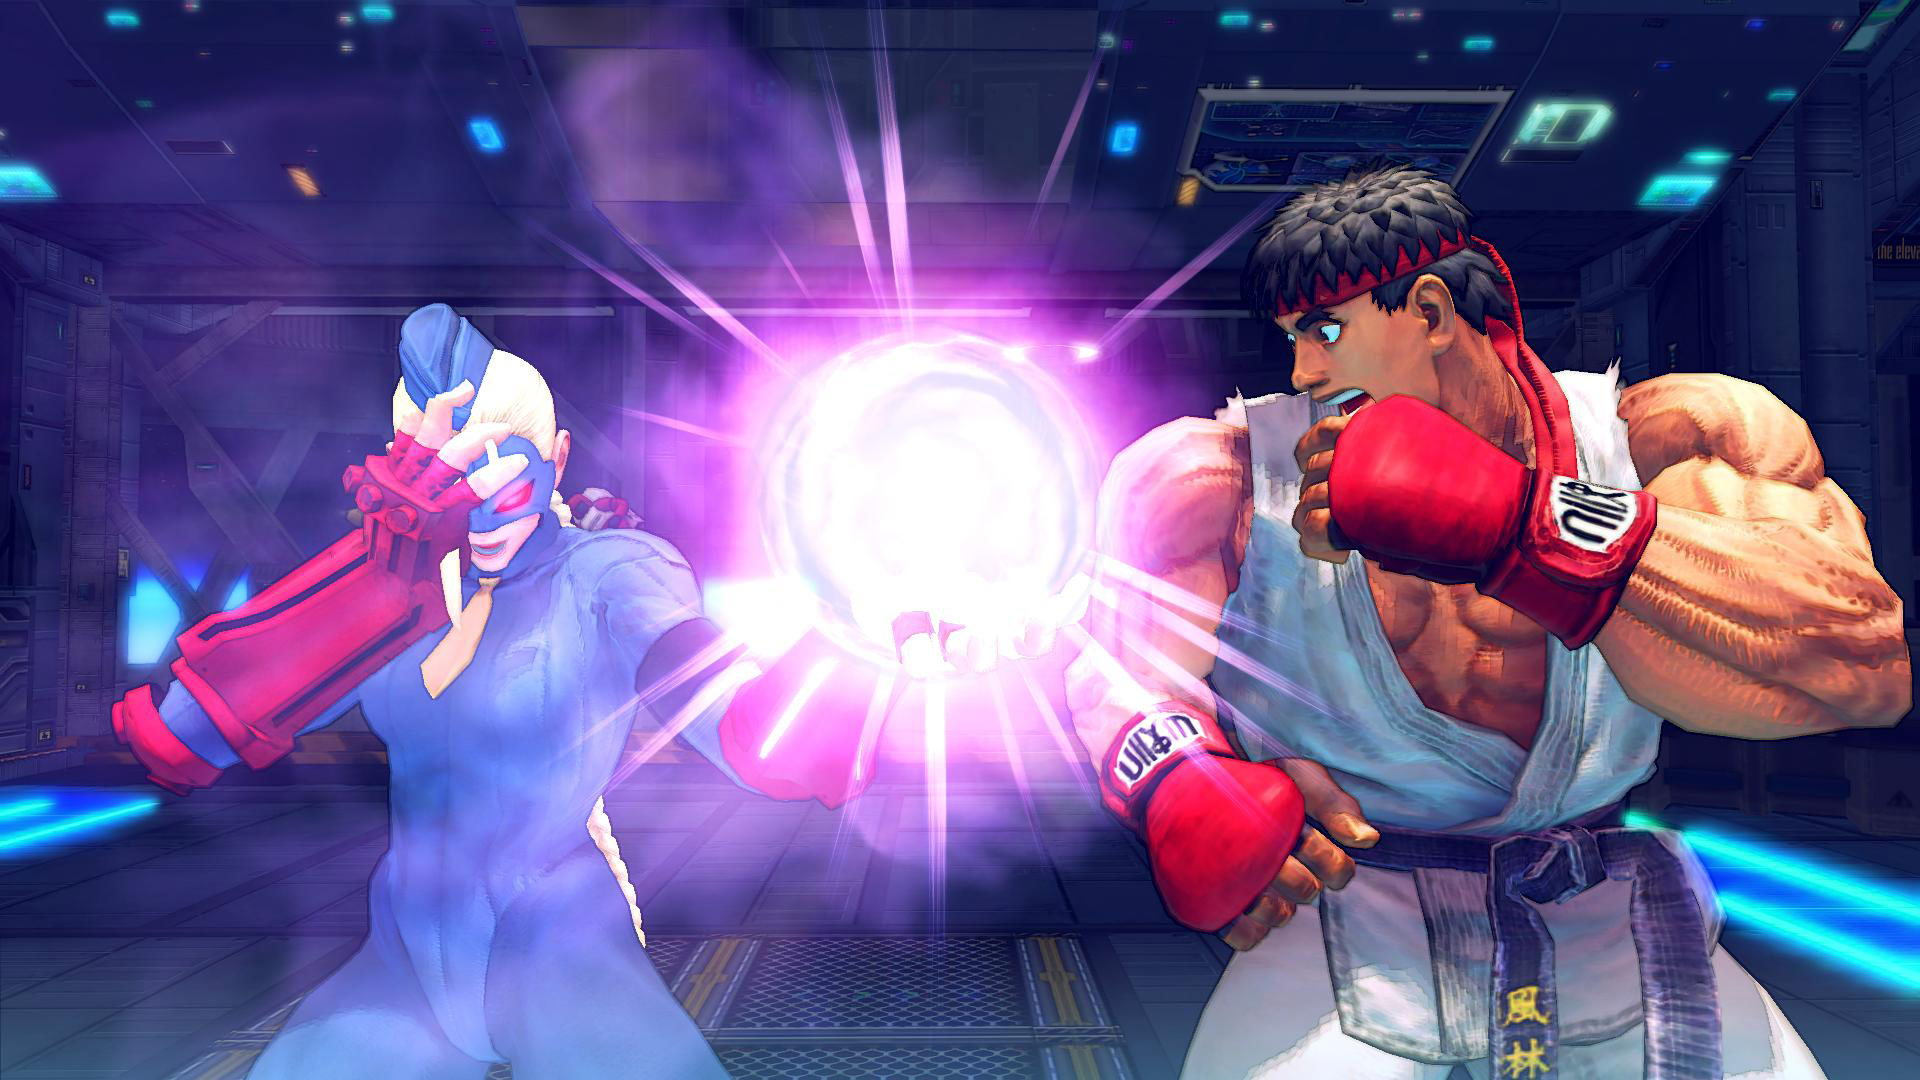 Decapre artwork and screen shots for Ultra Street Fighter 4 image #10